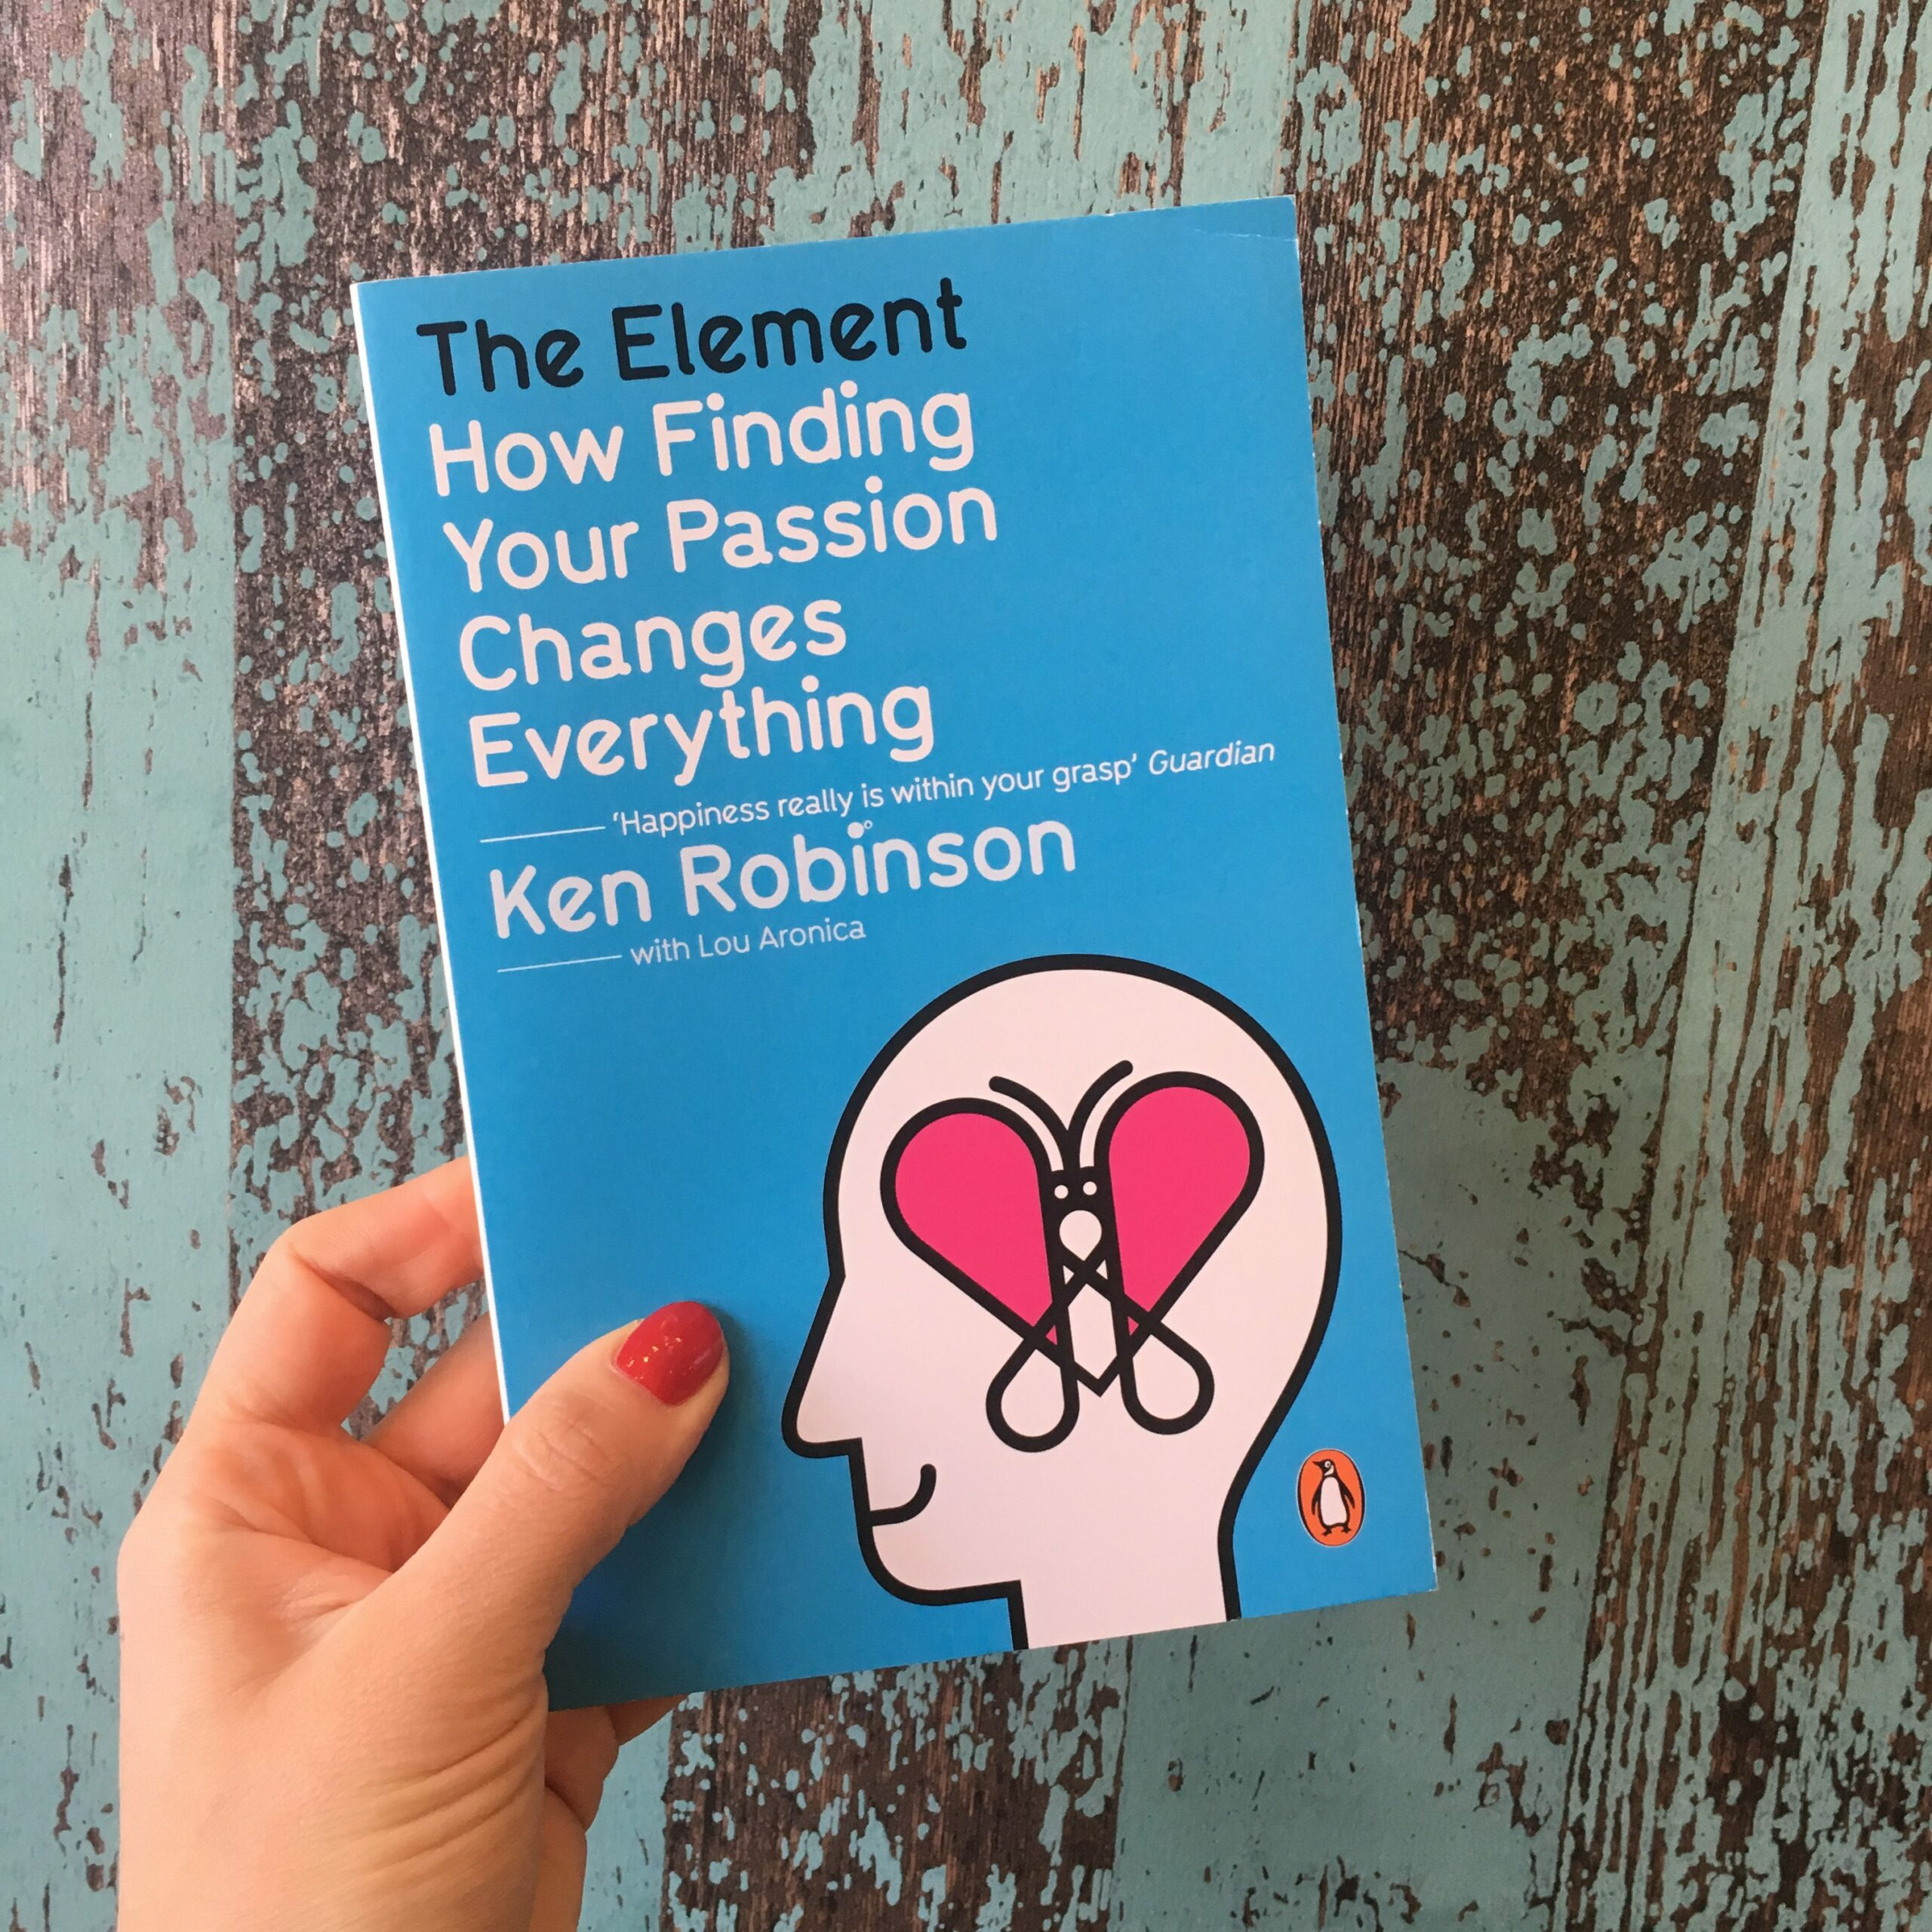 Ken Robinson The Element Finding Your Passion Changes Everything